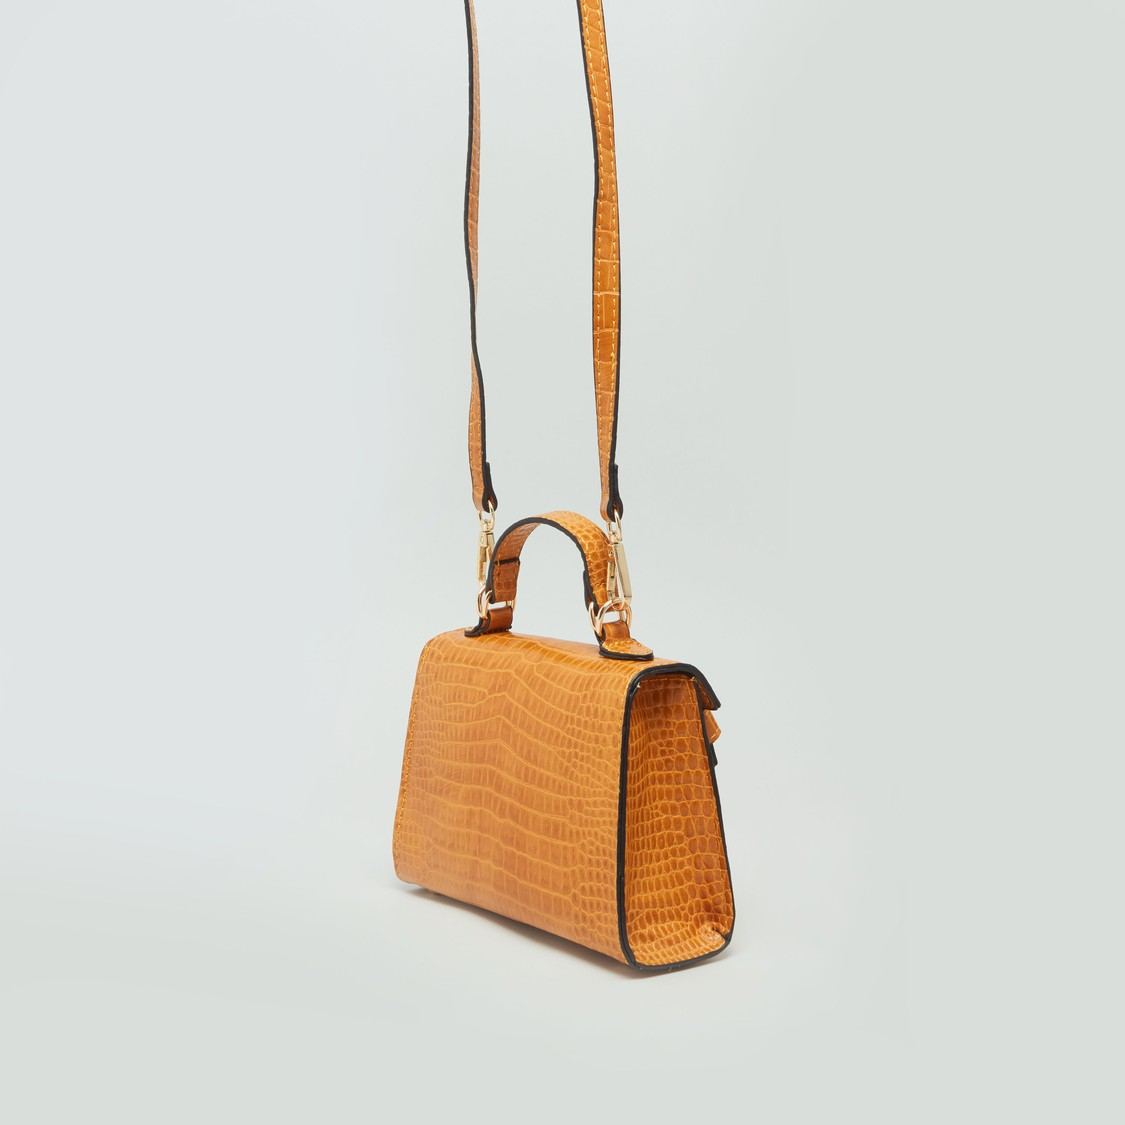 Textured Handbag with Handle Strap and Crossbody Strap